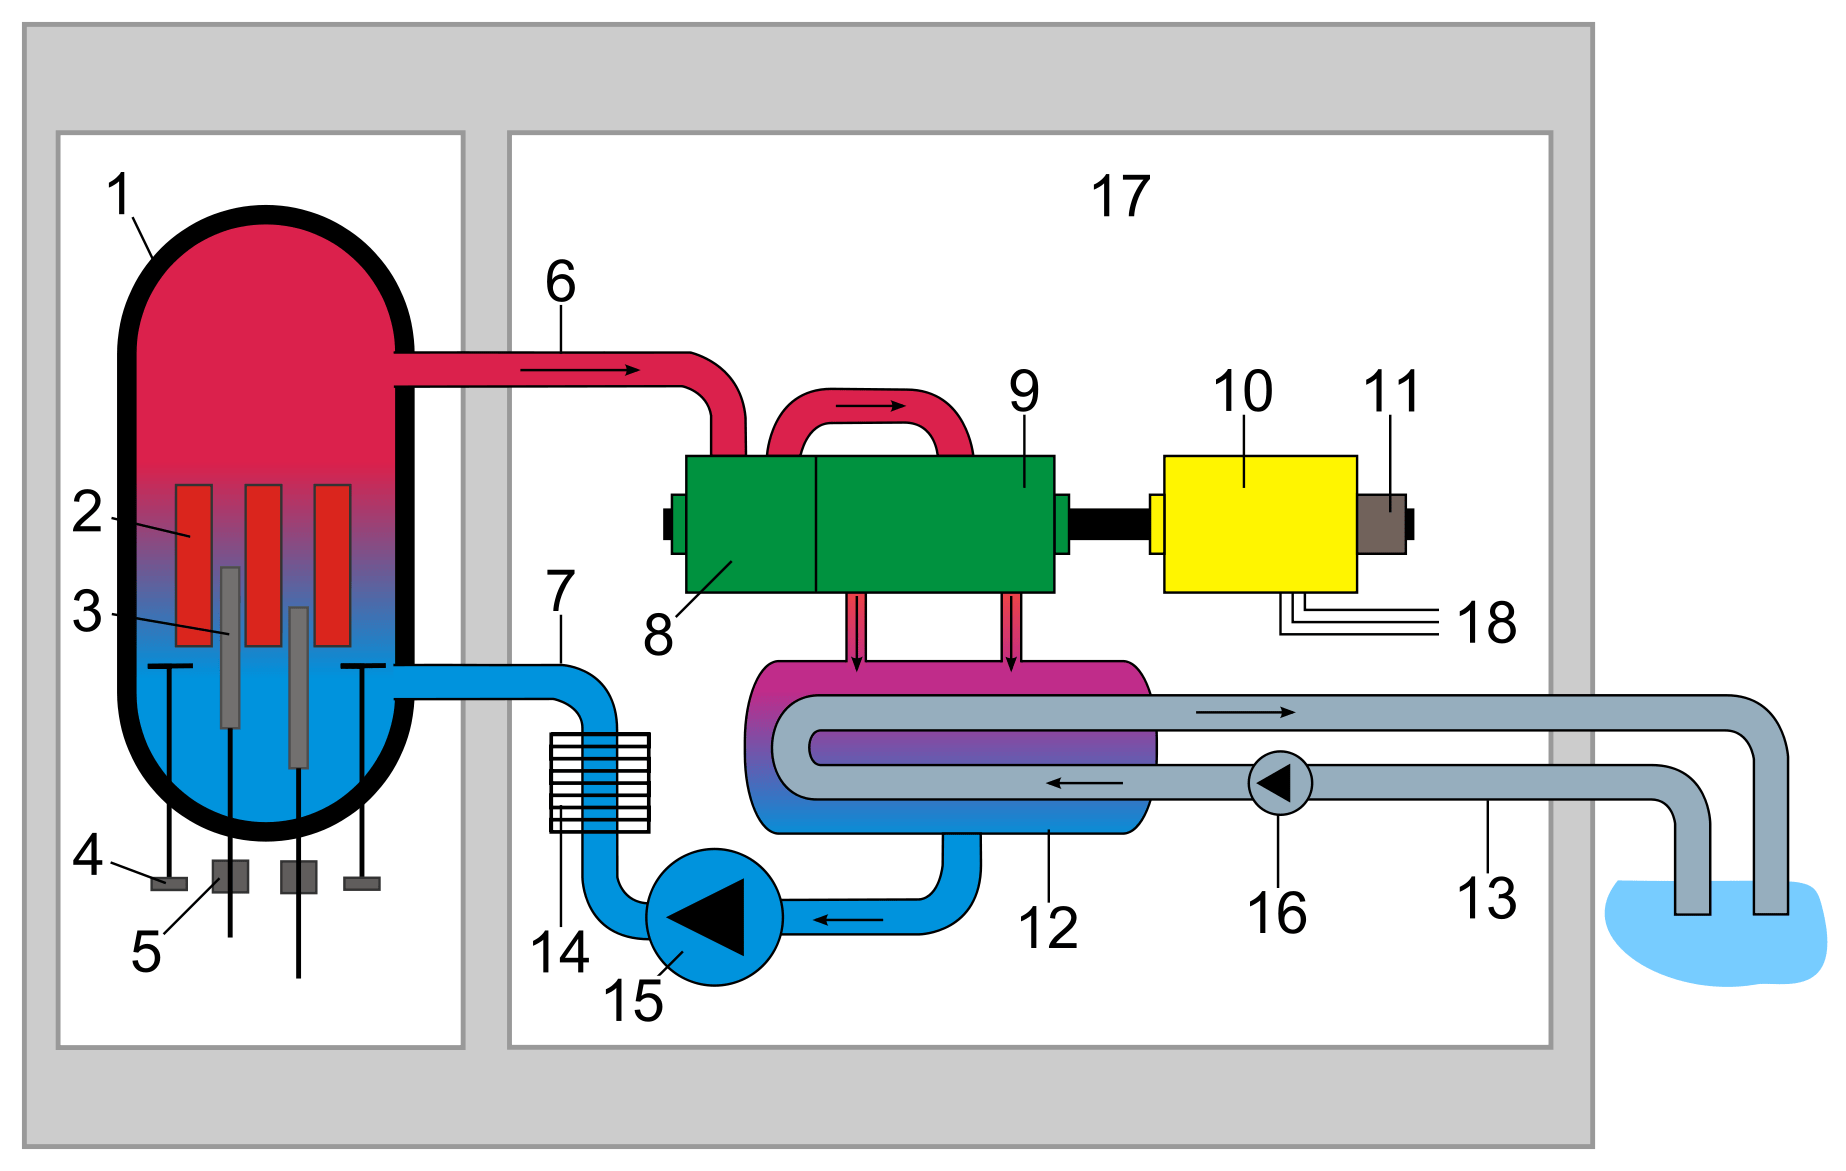 hight resolution of nuclear catastrophe avoidance in boiling water reactors power plant diagram boiling water reactor